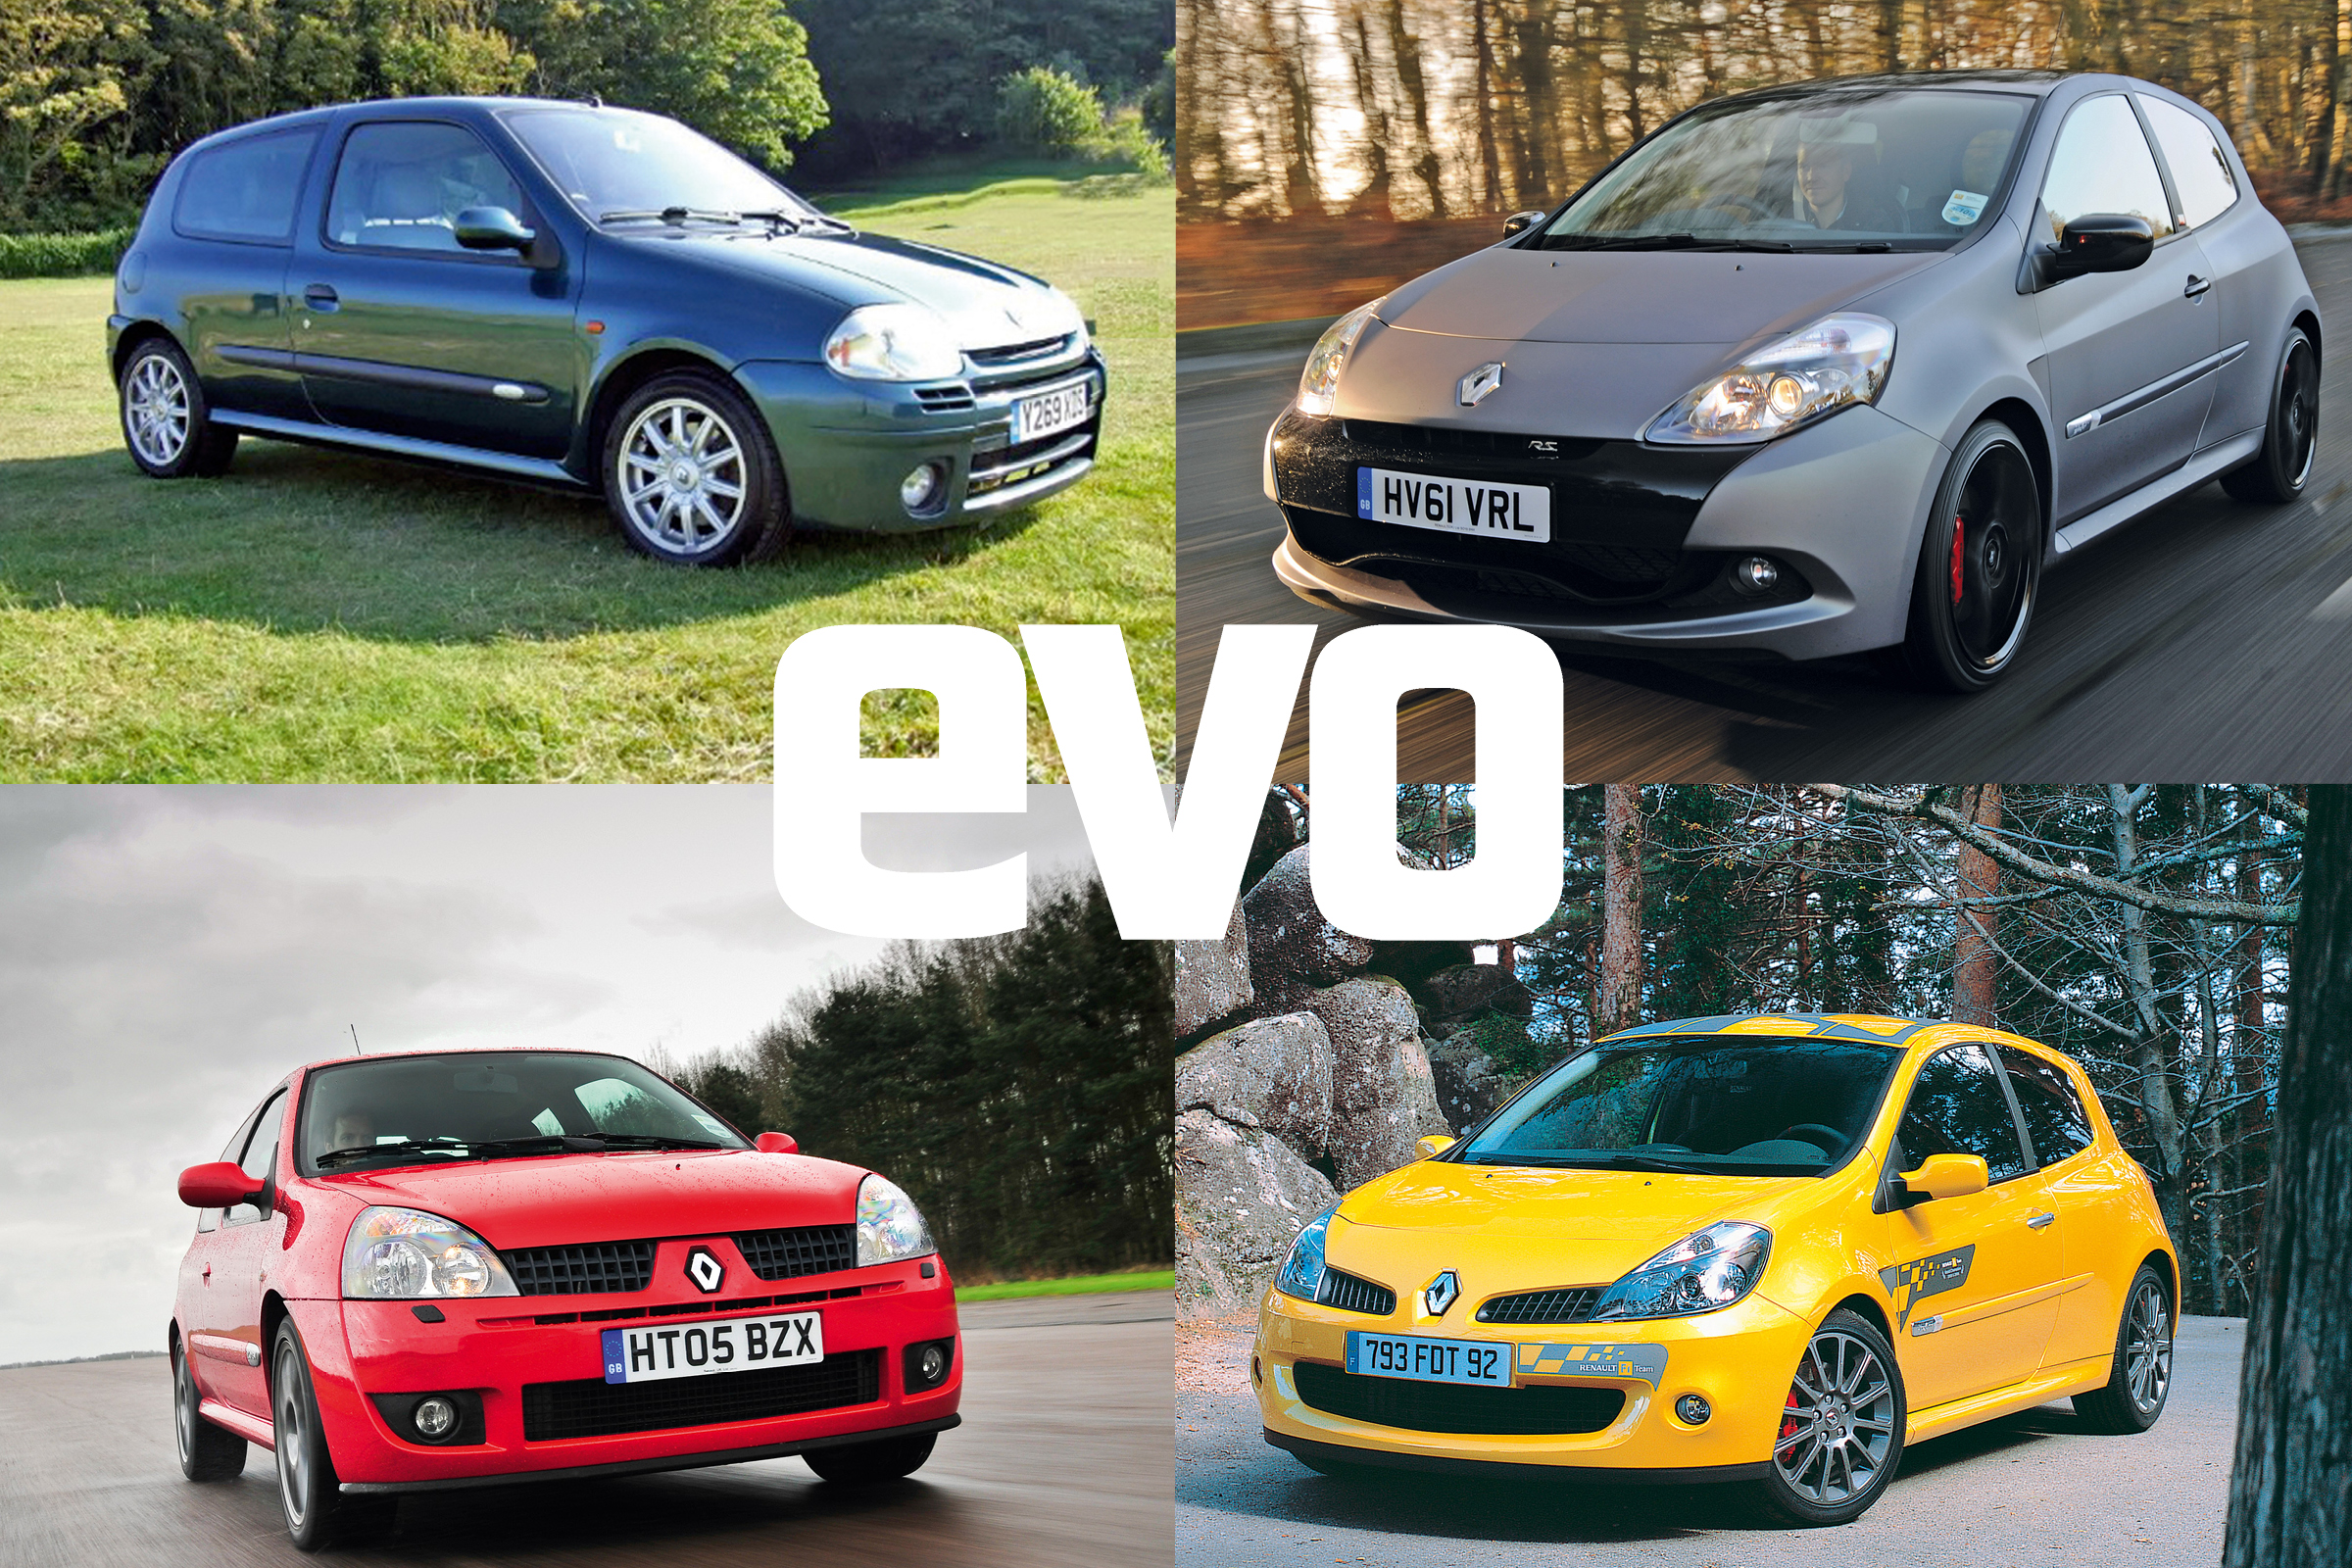 Renault Sport Clio History Of The French Hot Hatch Hero From 172 To 220 Evo